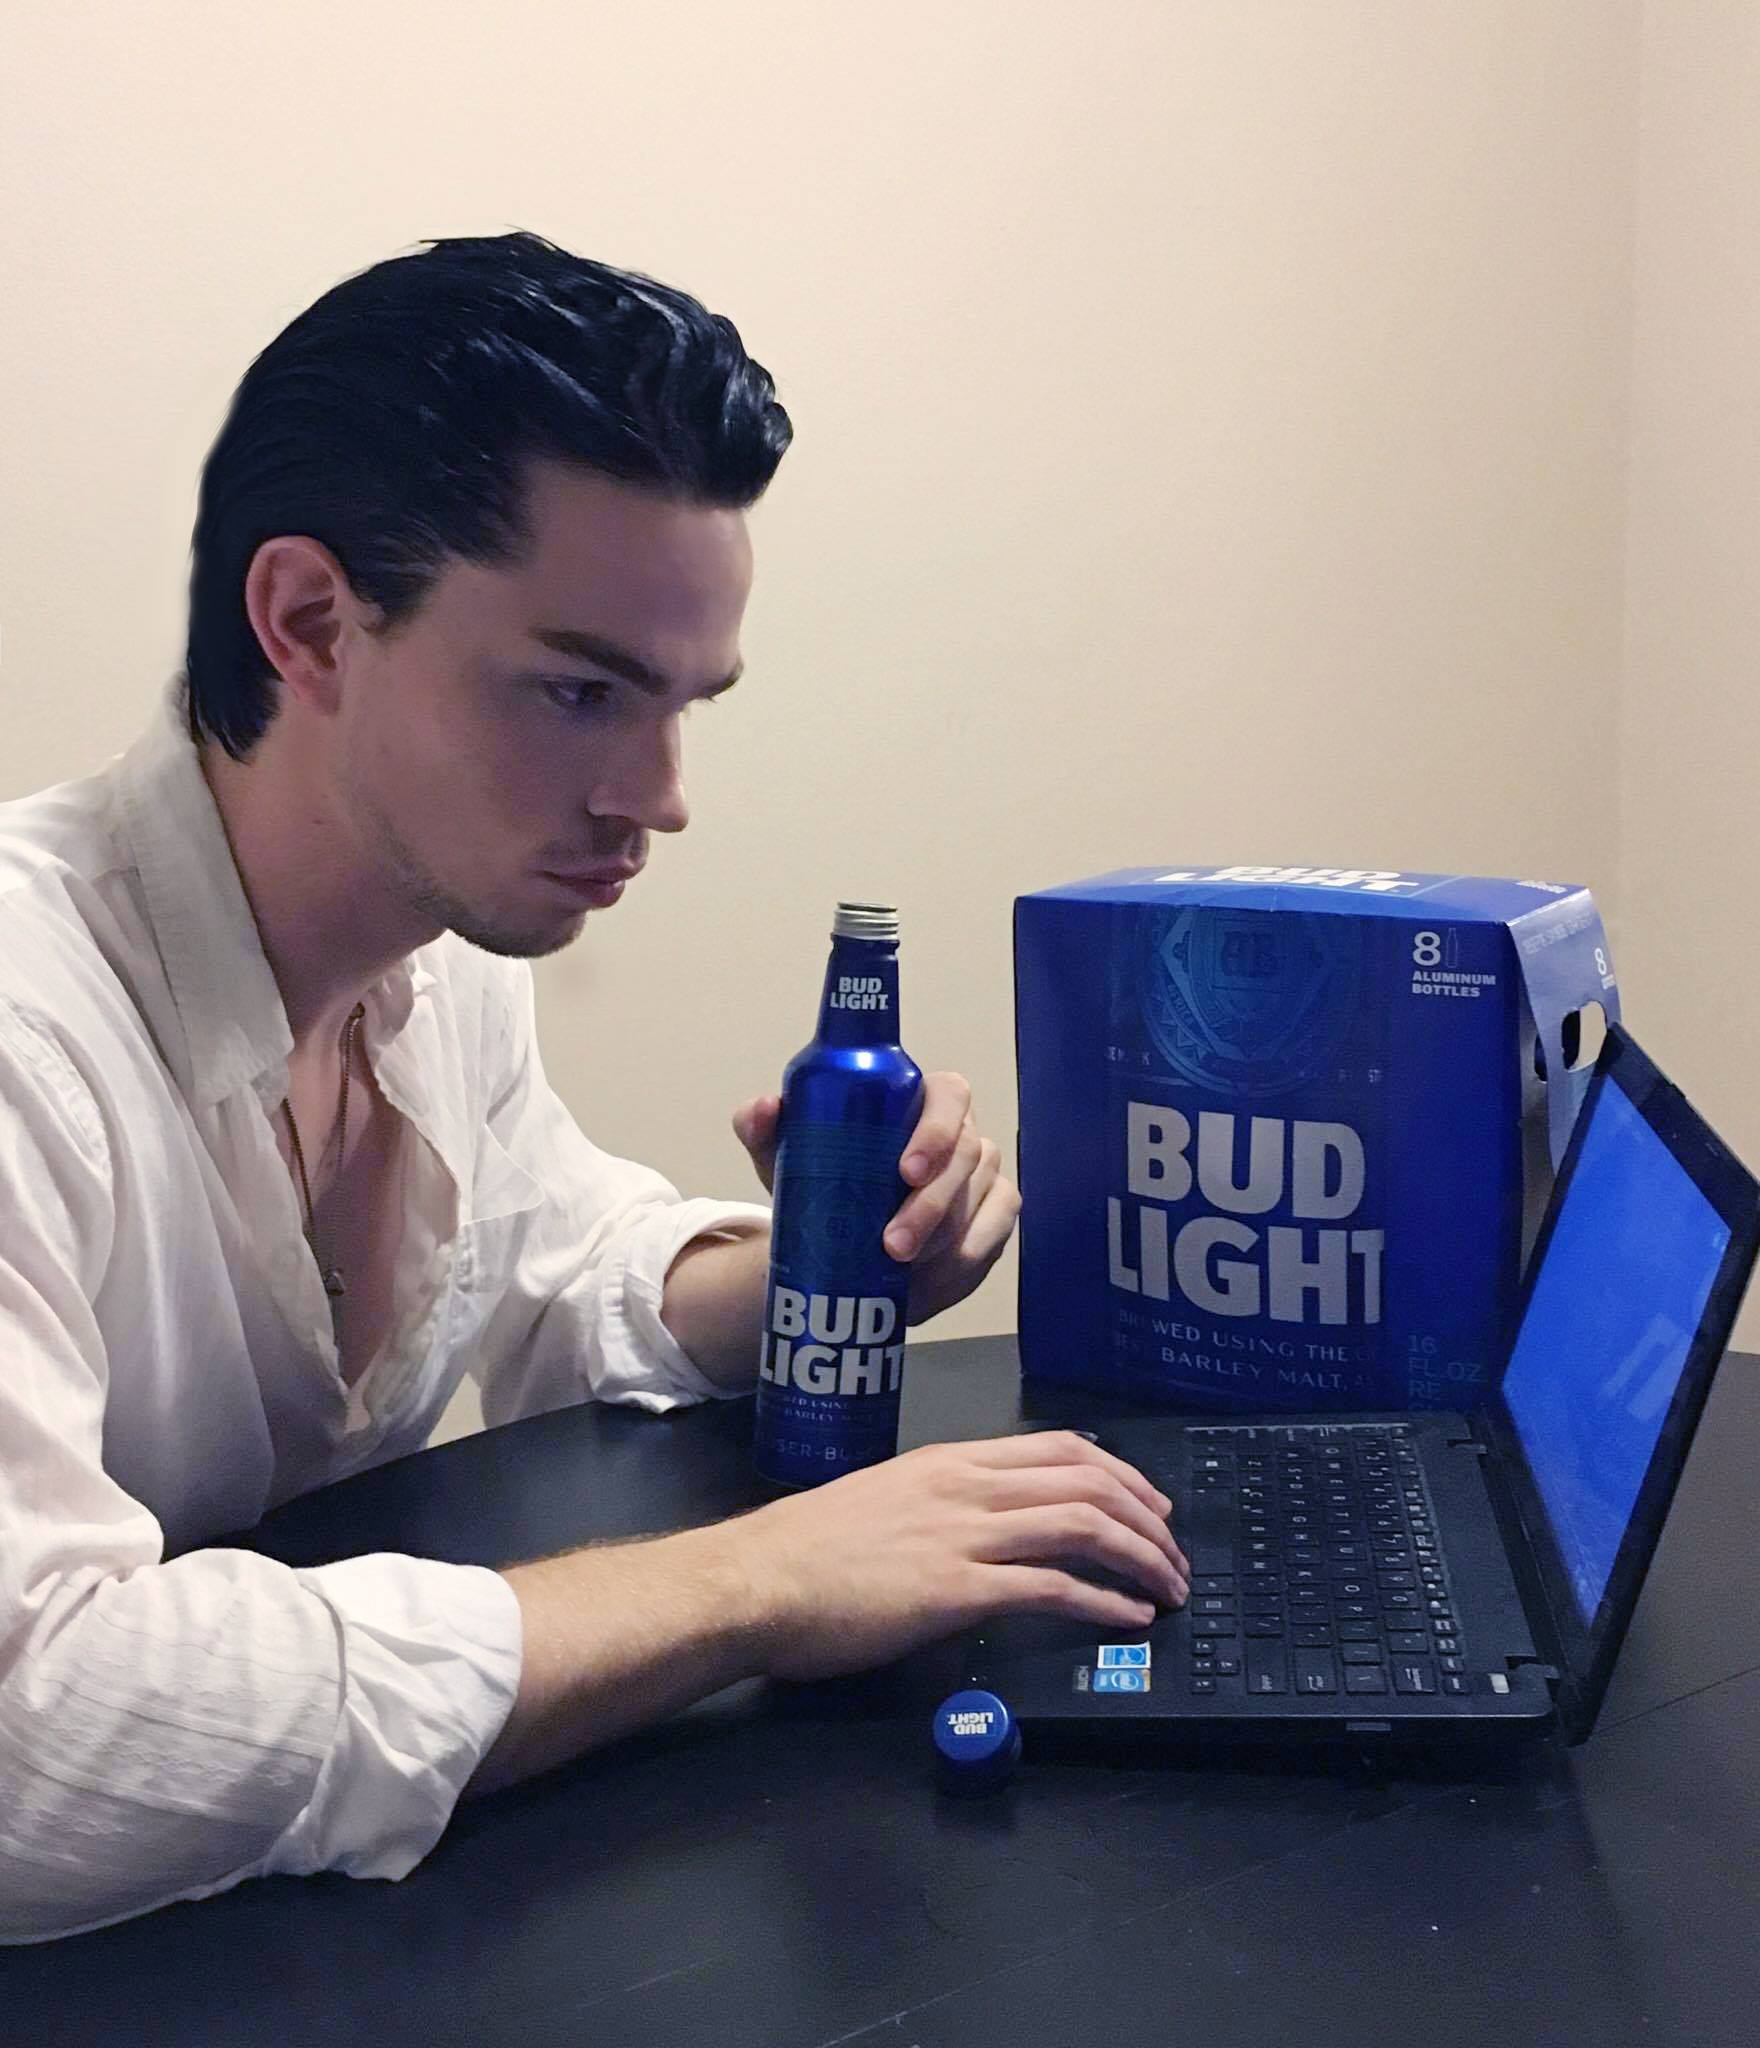 @isaiahgmusic's snapchat picture for budlight